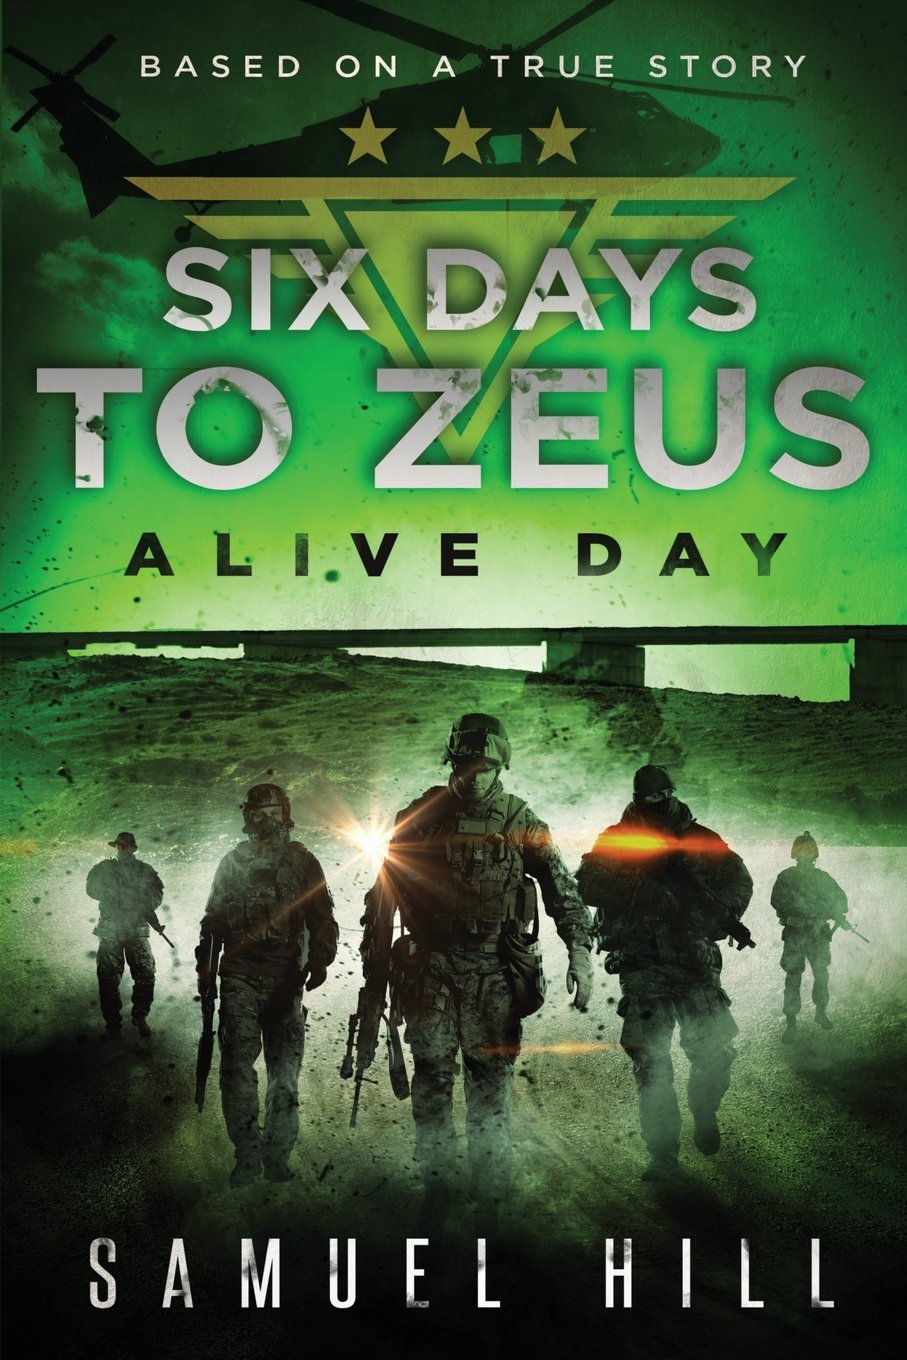 Six Days to Zeus: Alive Day (Based on a True Story): Samuel Hill:  9781632638045: Amazon.com: Books